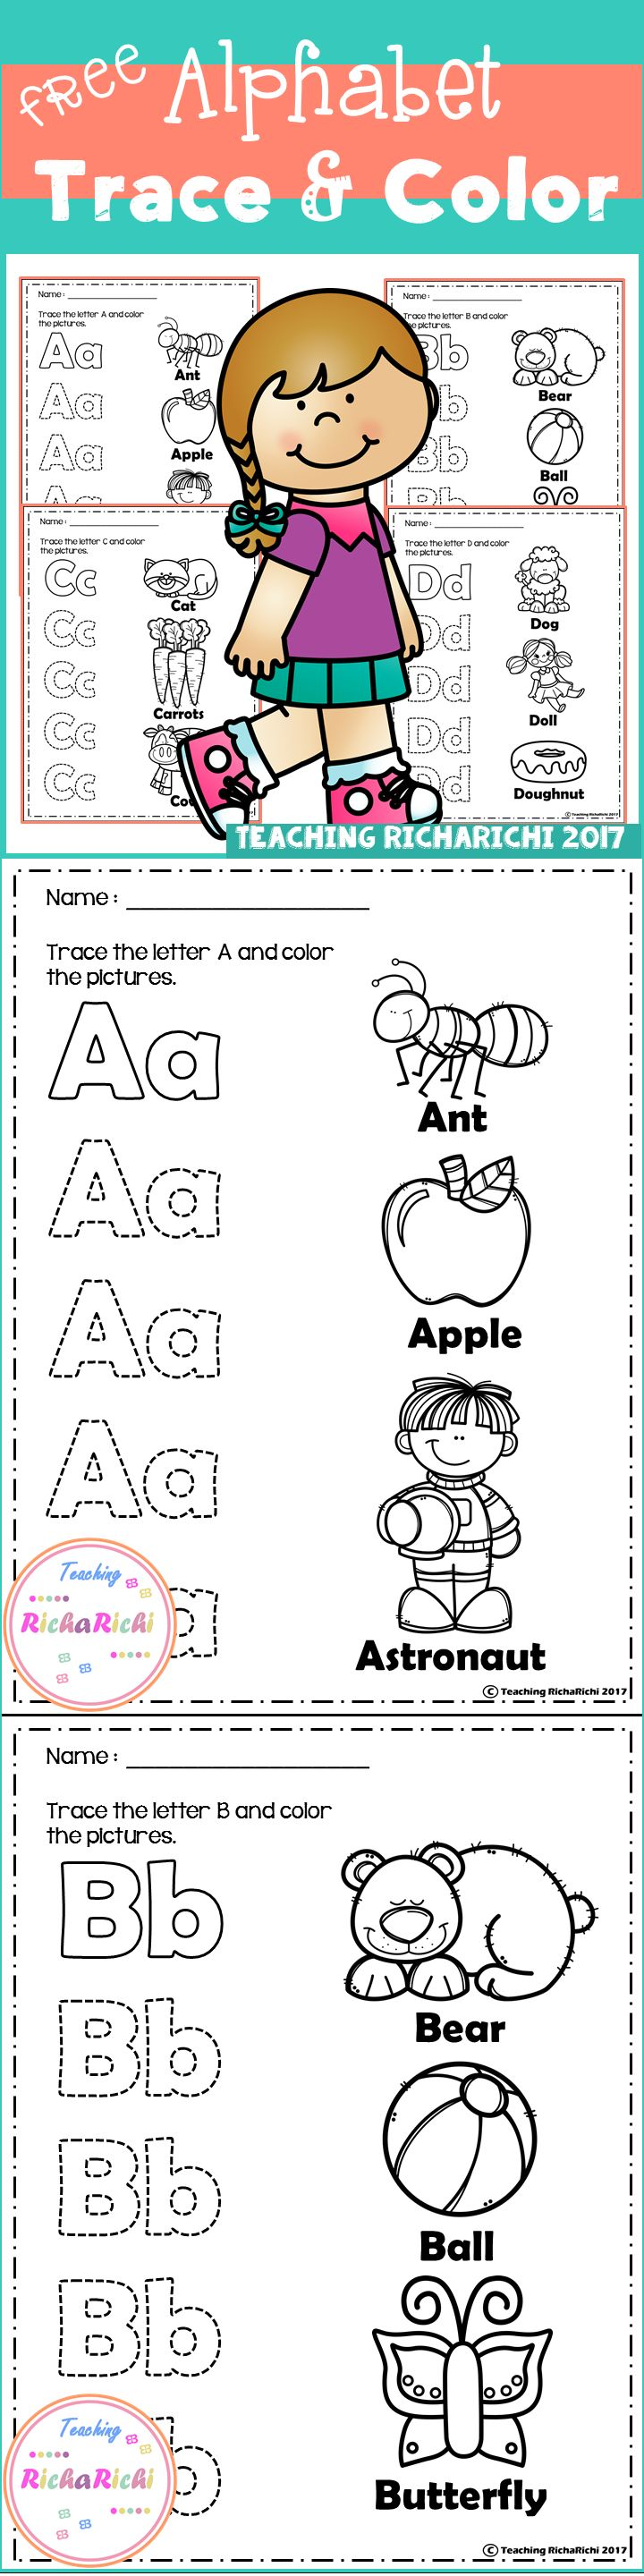 worksheet Free Printable Kindergarten Sight Word Worksheets 1000 ideas about kindergarten sight word worksheets on pinterest words sound isolation and wor